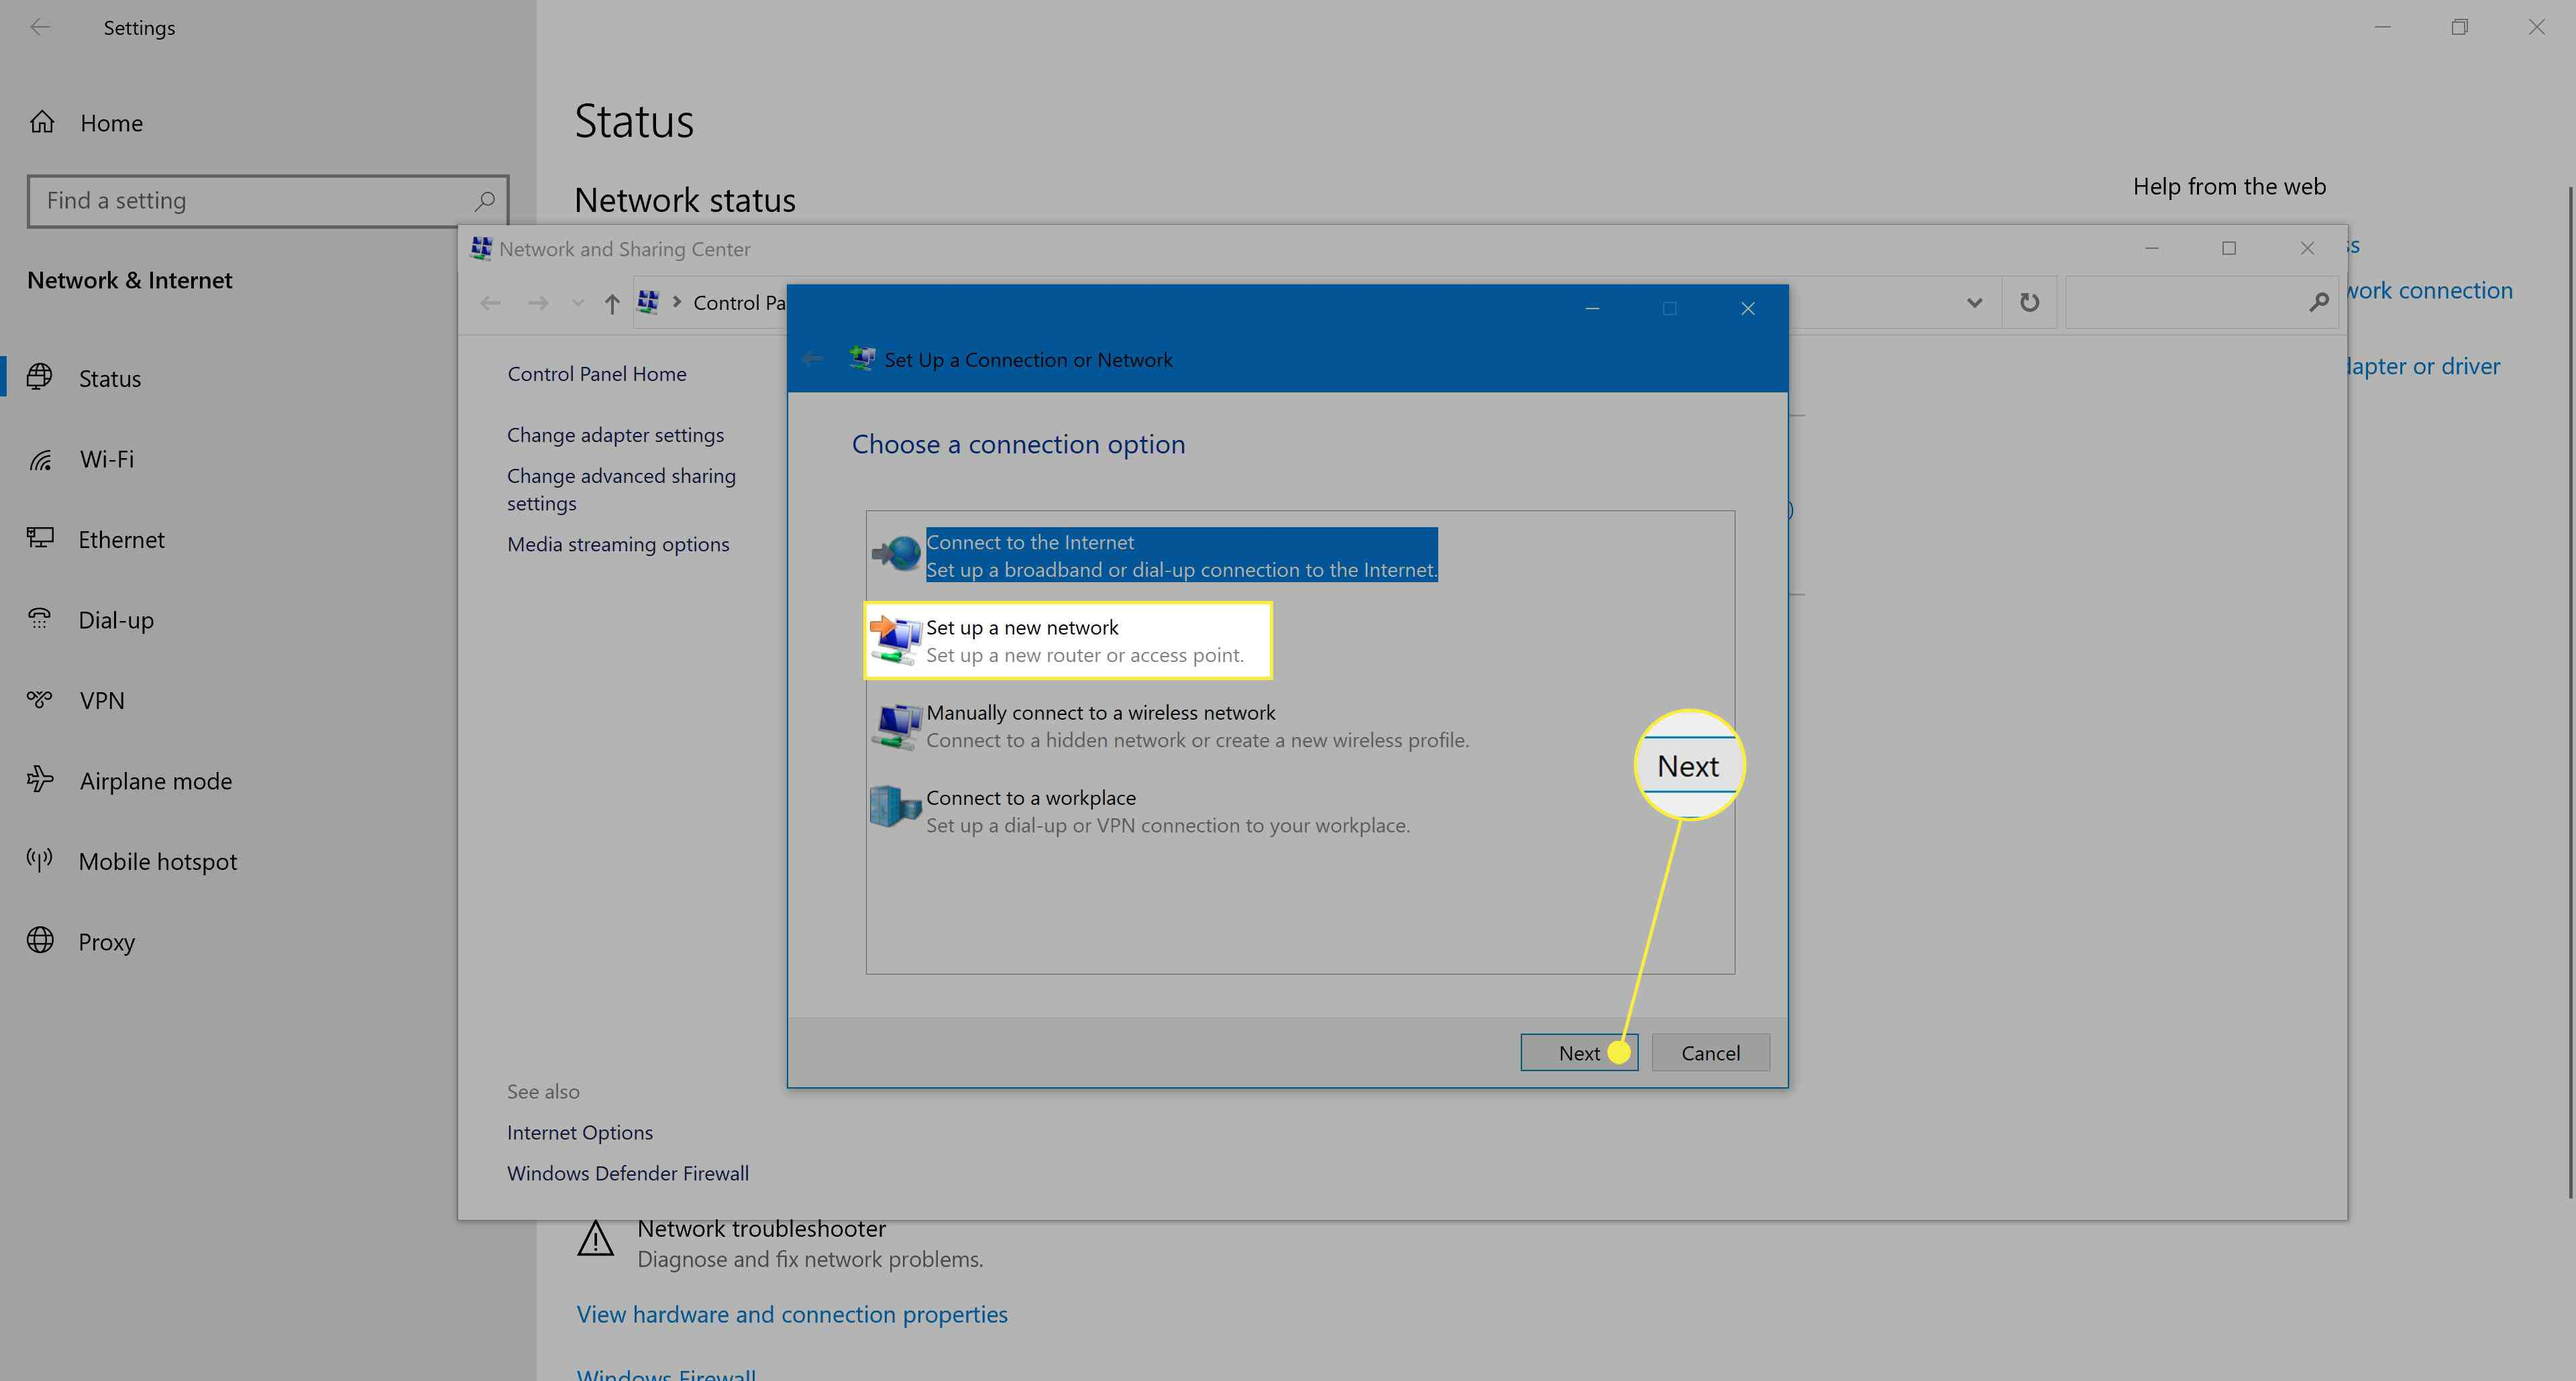 Setting up a new network in Windows 10.